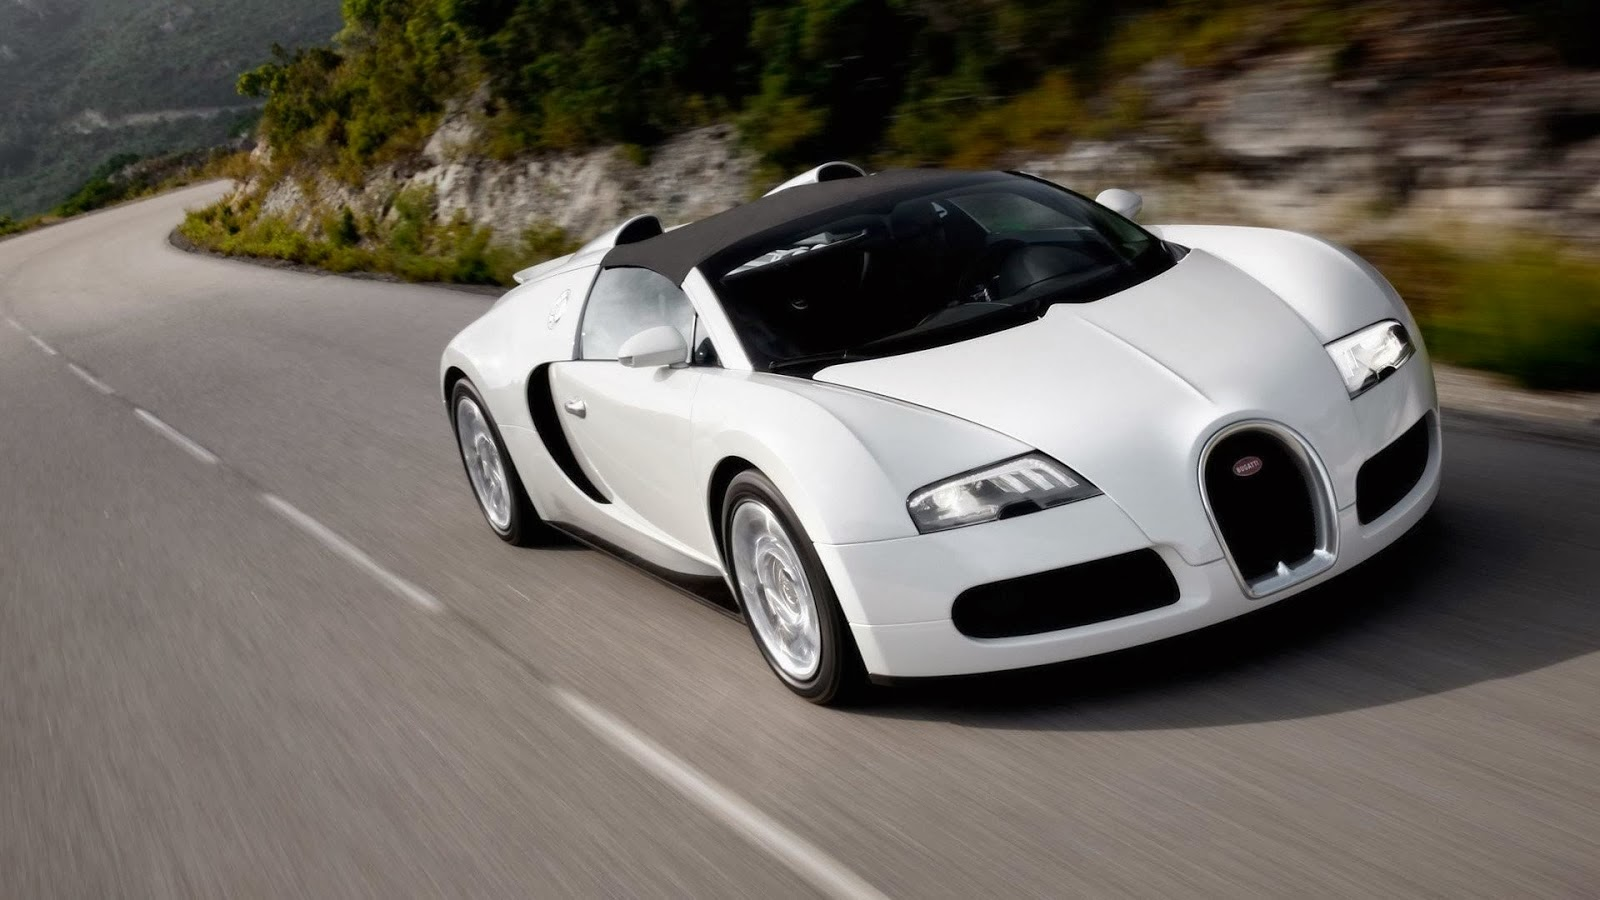 all hot informations download bugatti veyron sports cars hd wallpapers 1080p. Black Bedroom Furniture Sets. Home Design Ideas